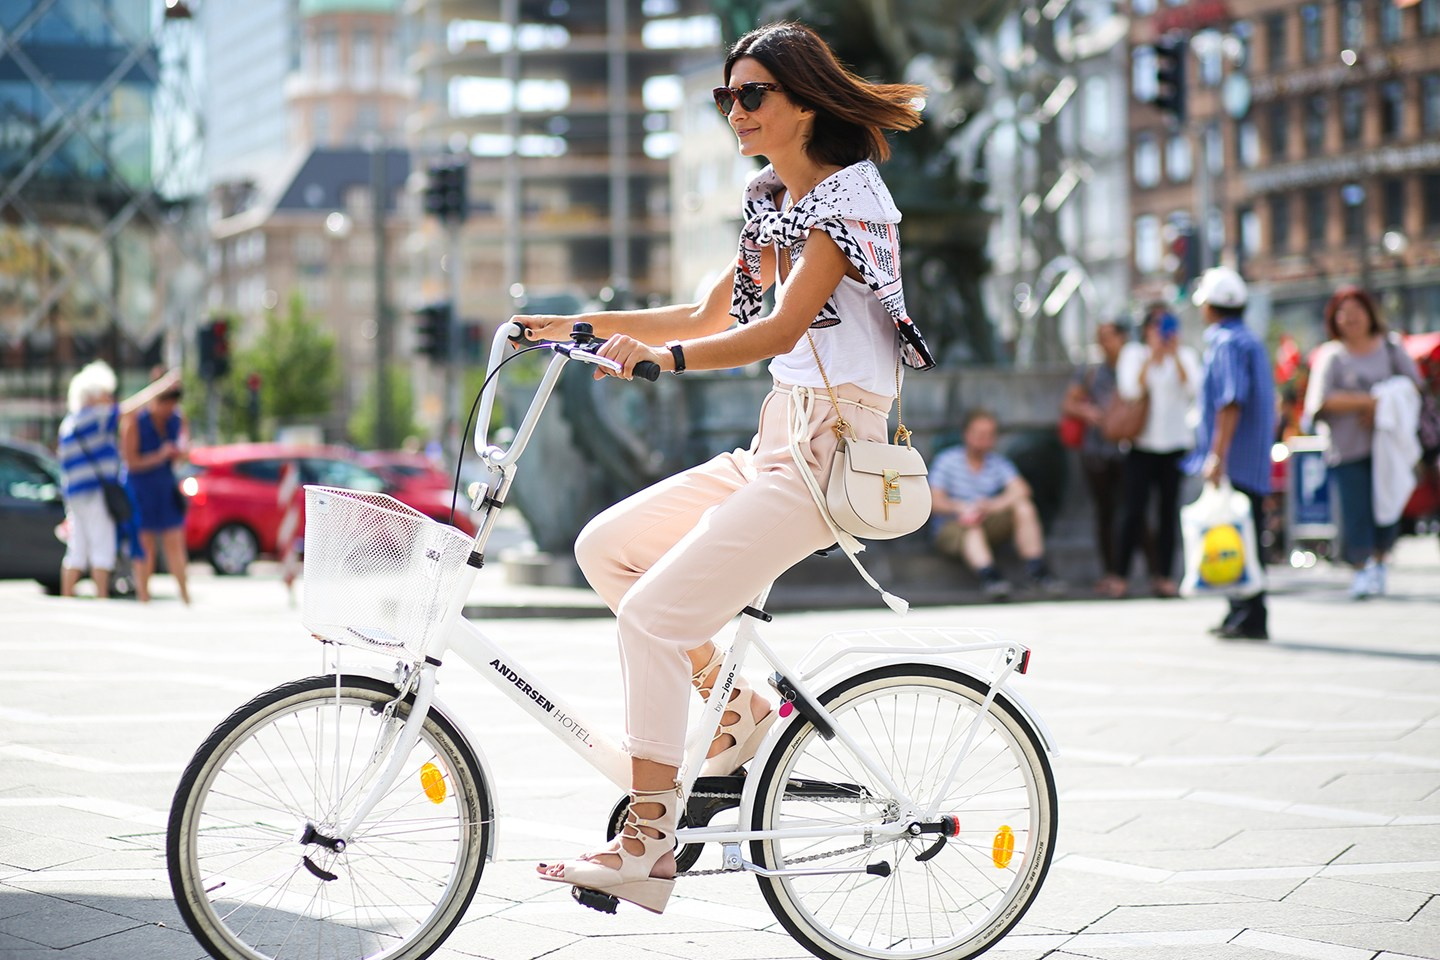 copenhagen-street-chic-8-vogue-10aug15-pa_b_1440x960